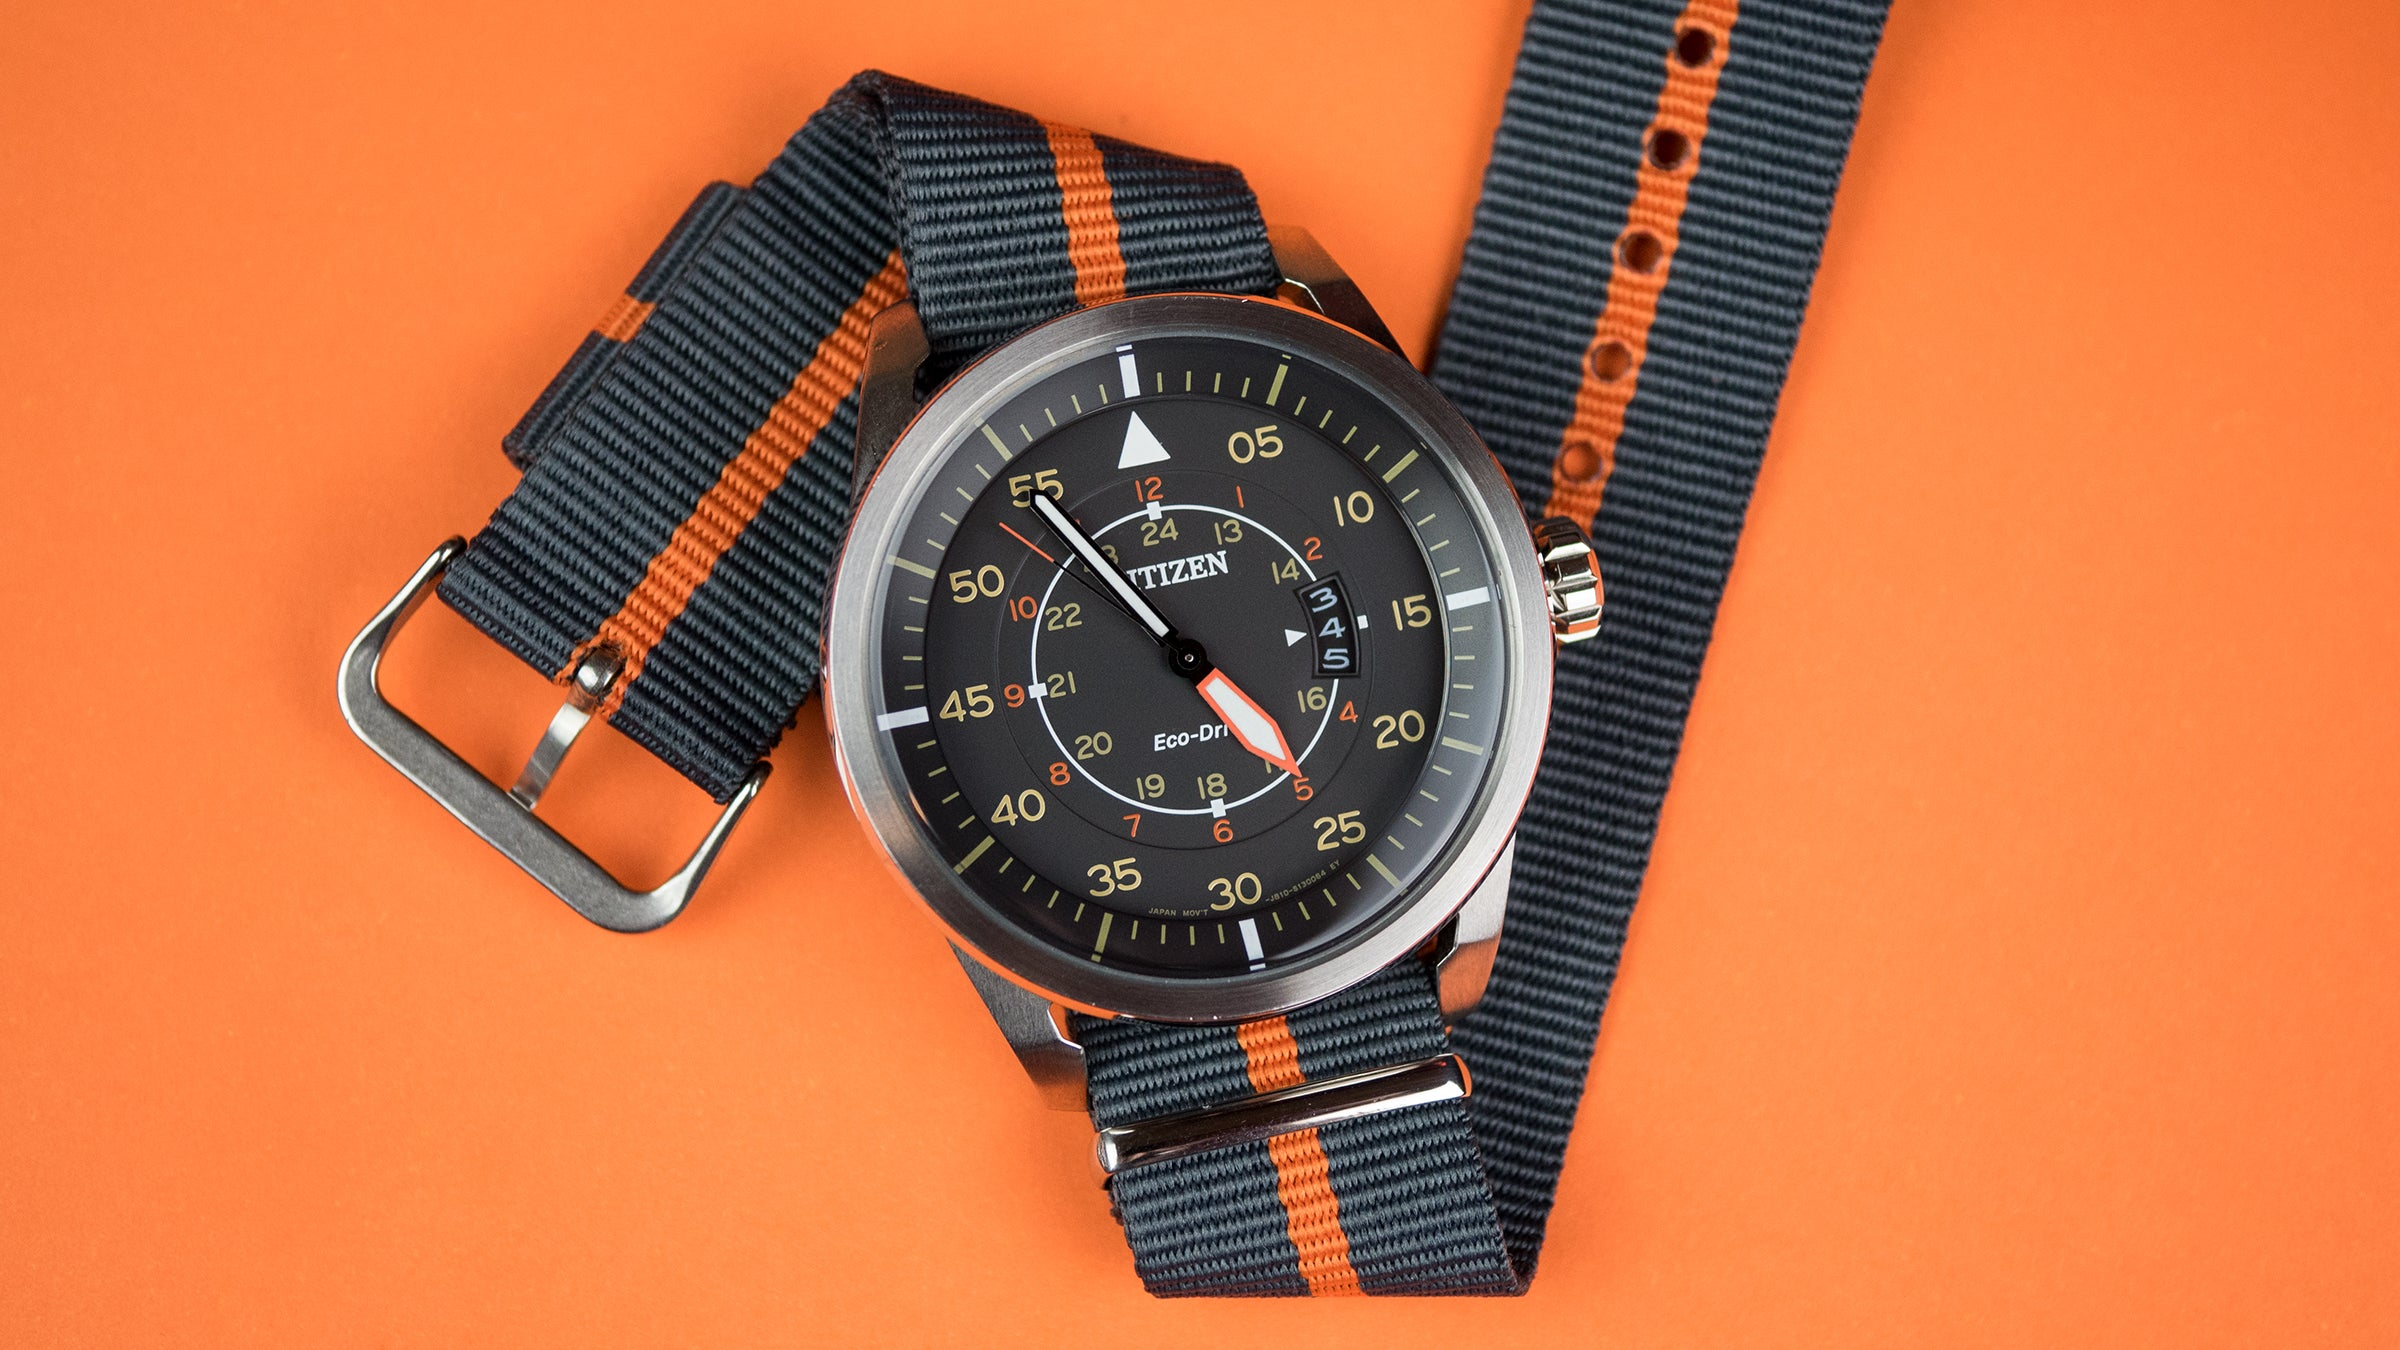 nylon NATO style watch strap